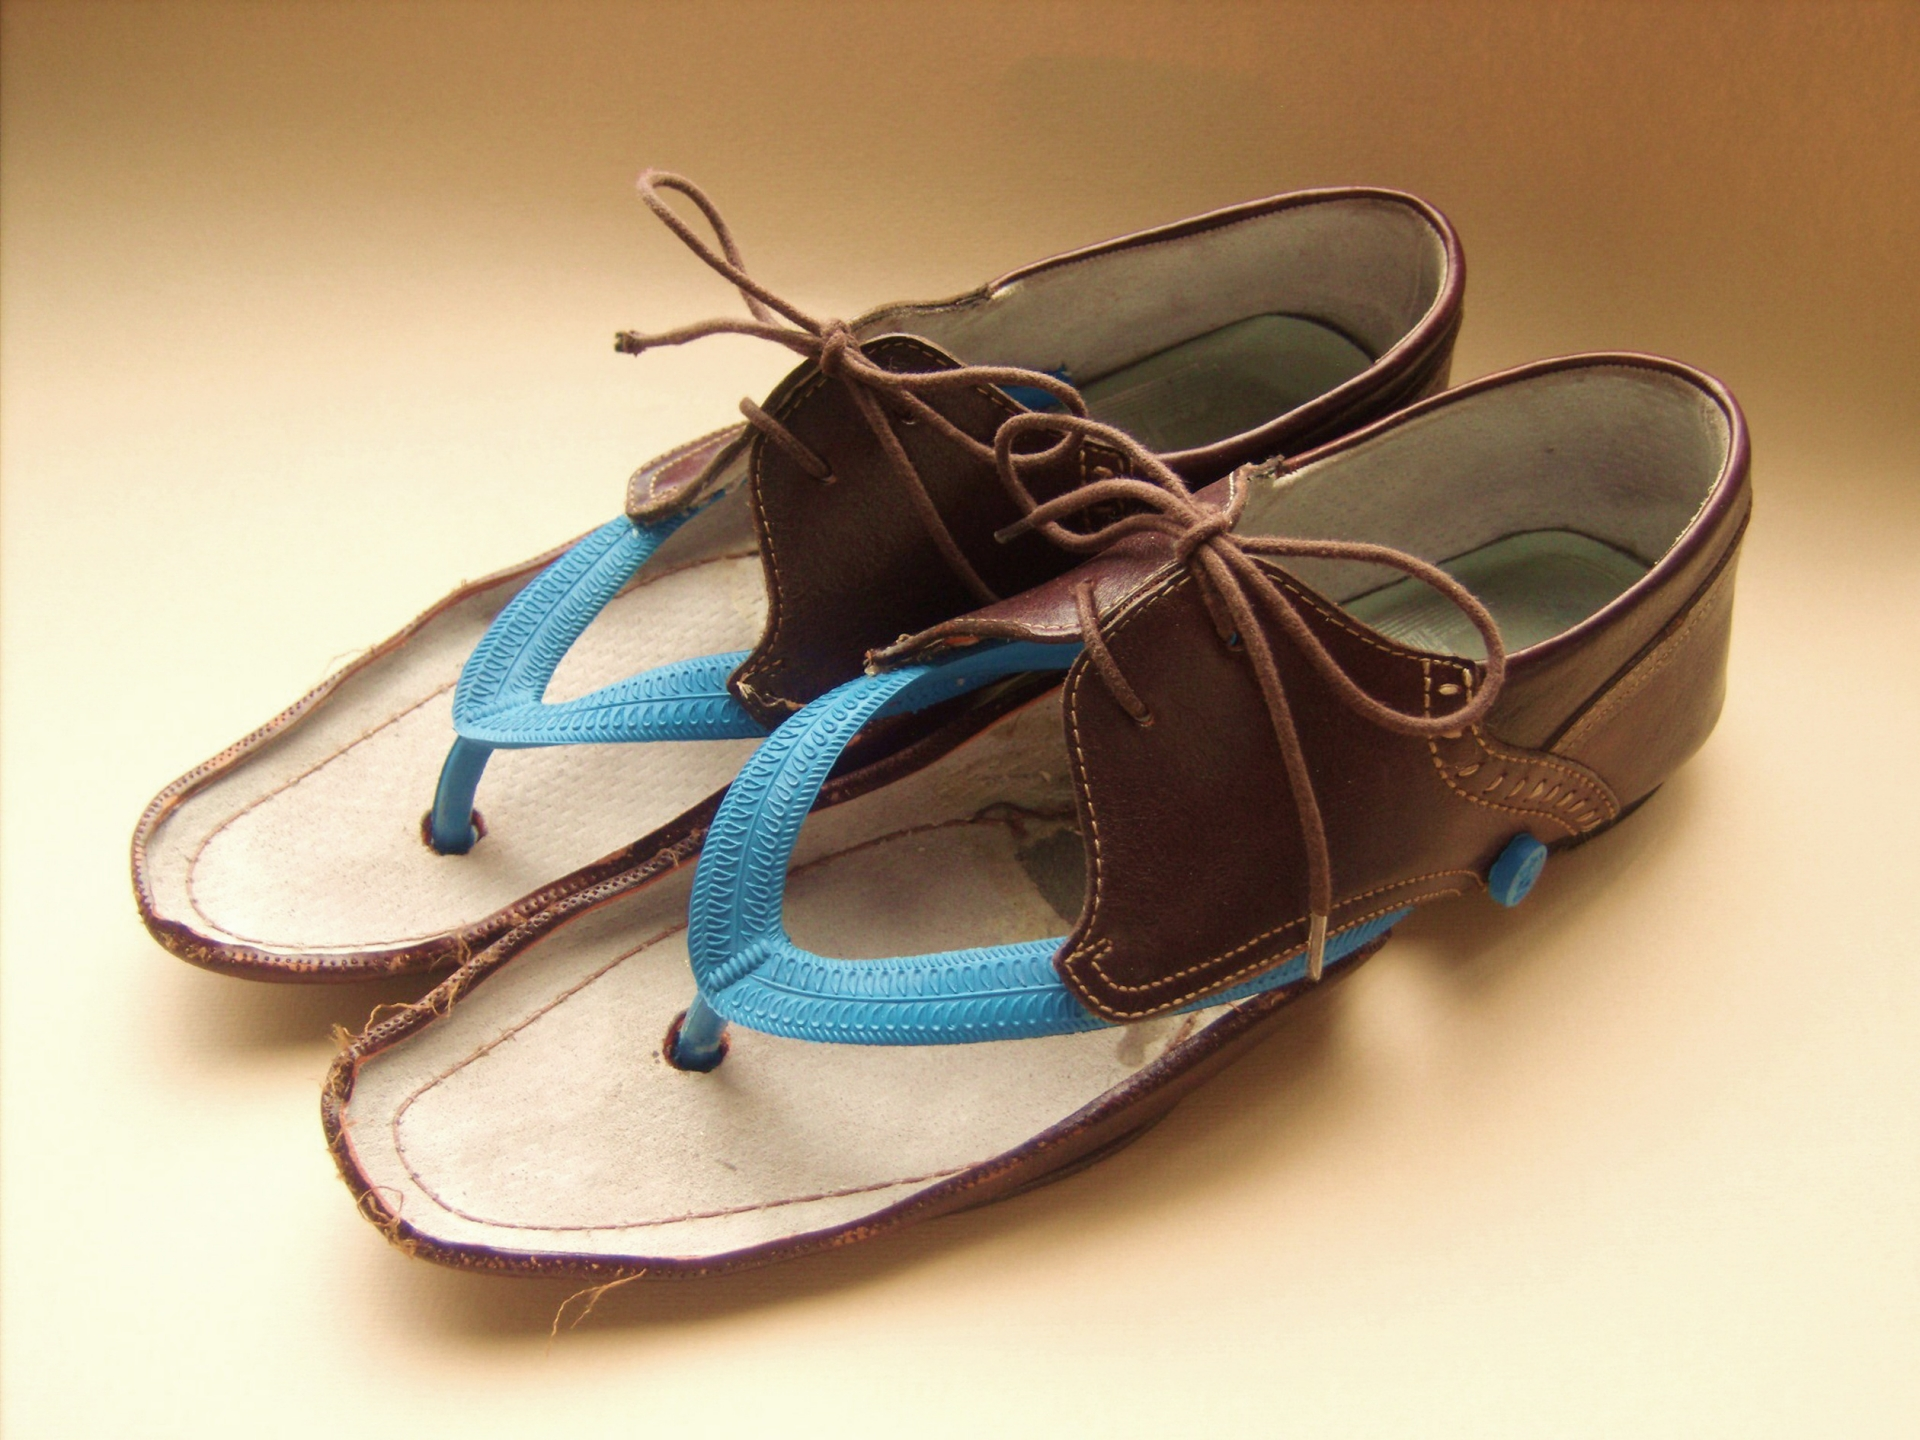 JASLEEN KAUR Father's Shoes